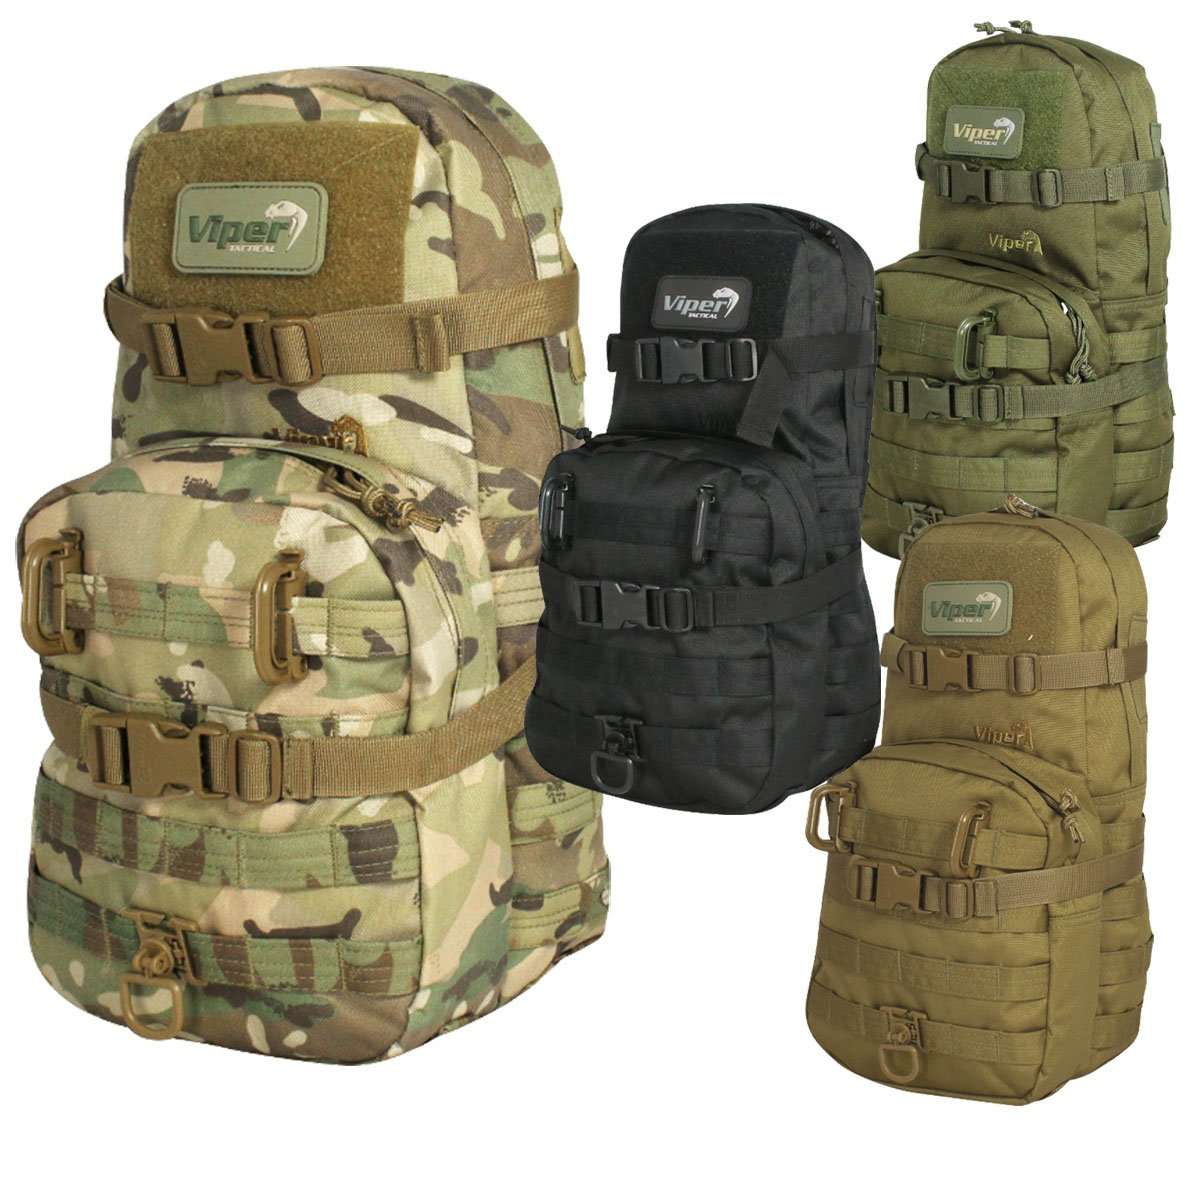 Viper One Day Modular Pack Coyote  Amazon.co.uk  Sports   Outdoors 384b92dabb0d4